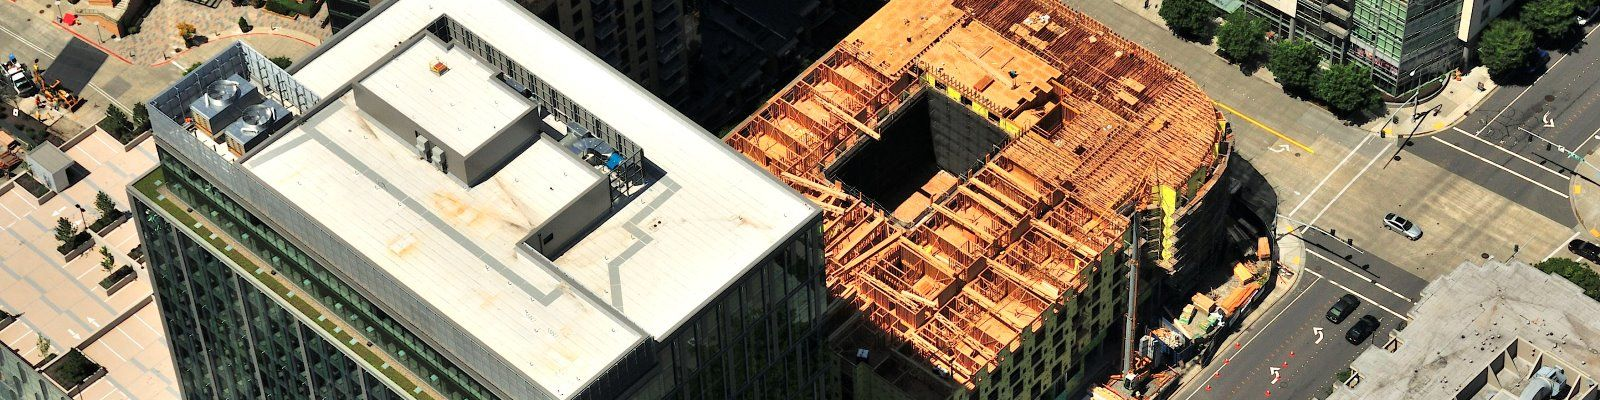 aerial-downtown-construction-banner.jpg